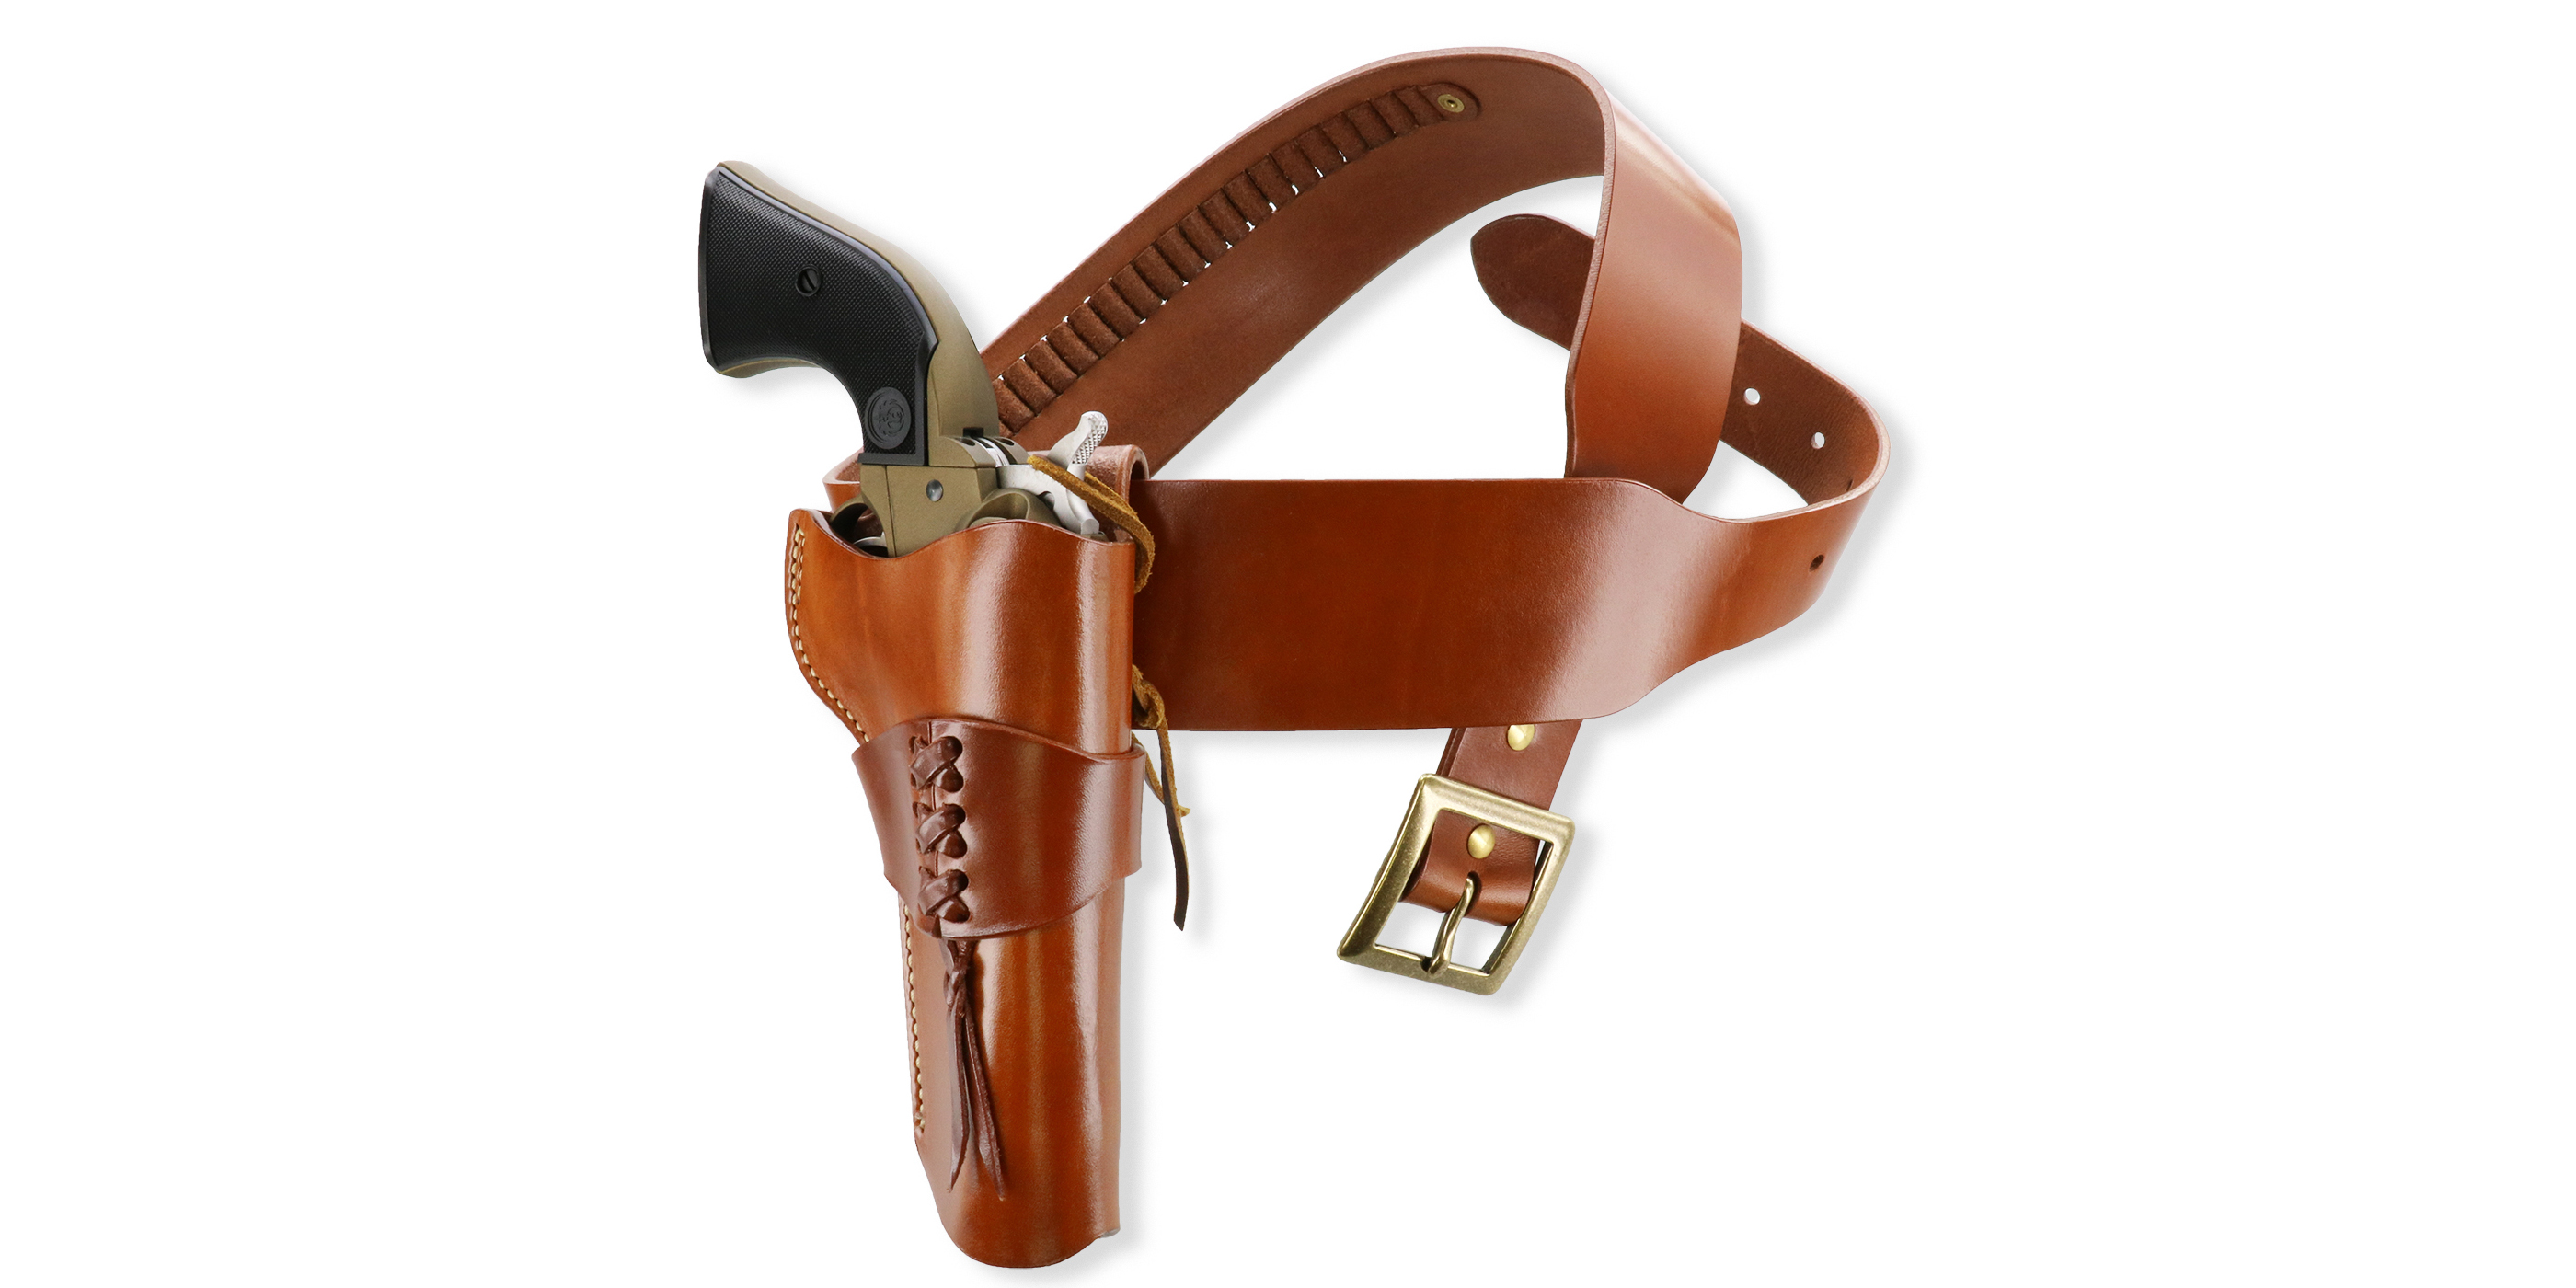 NEW Cowboy Accoutrements! Galco Holster & Cartridge Belt for Ruger Wrangler